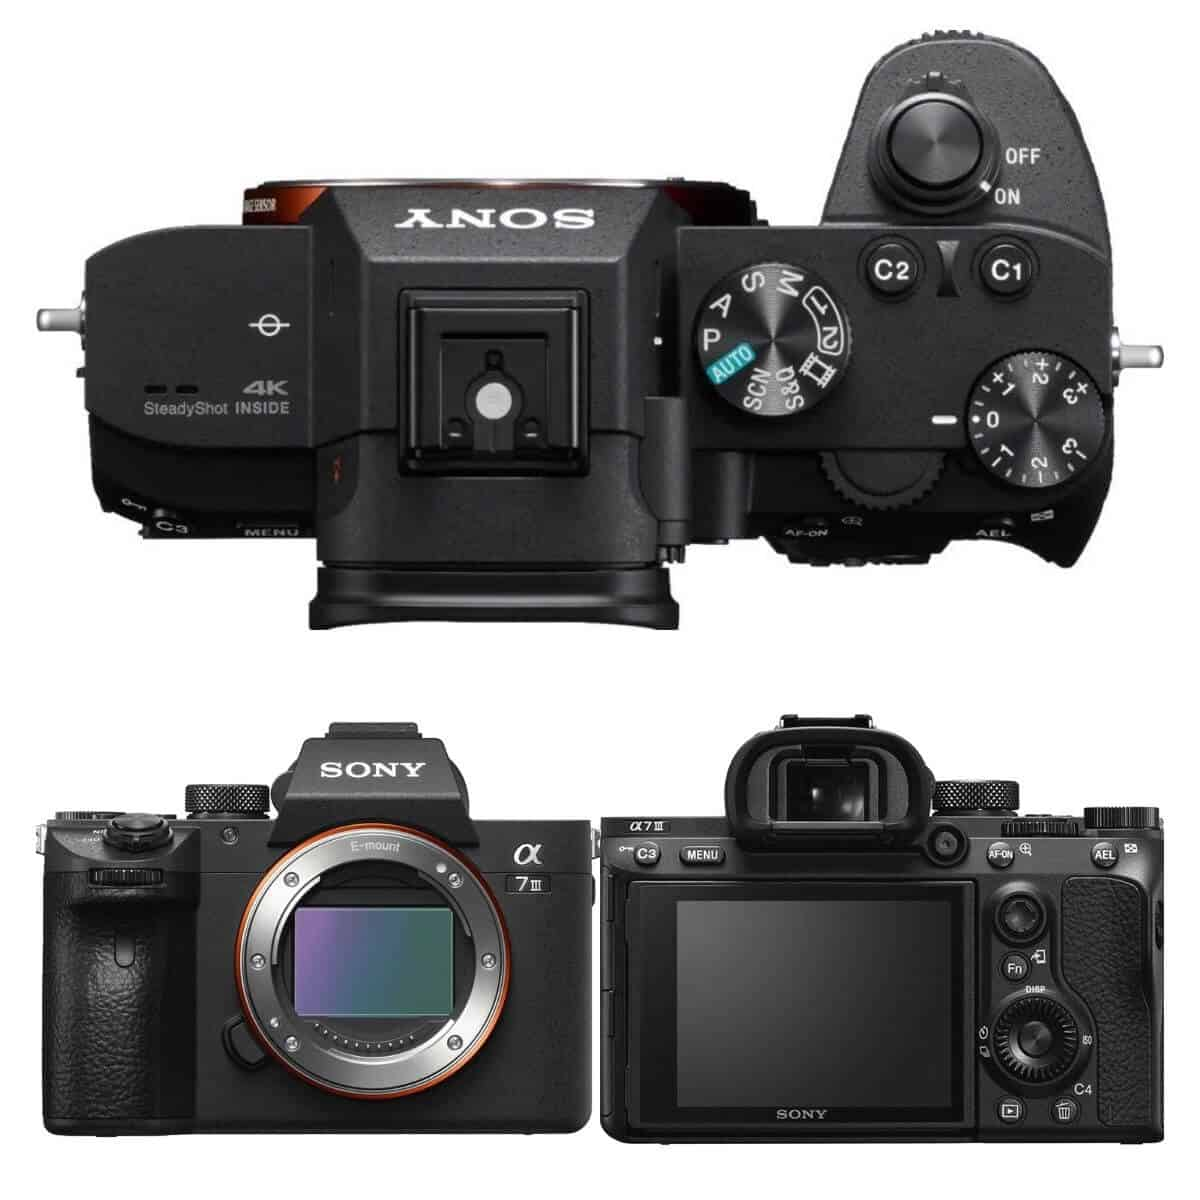 Three angles of the Sony a7 III camera.